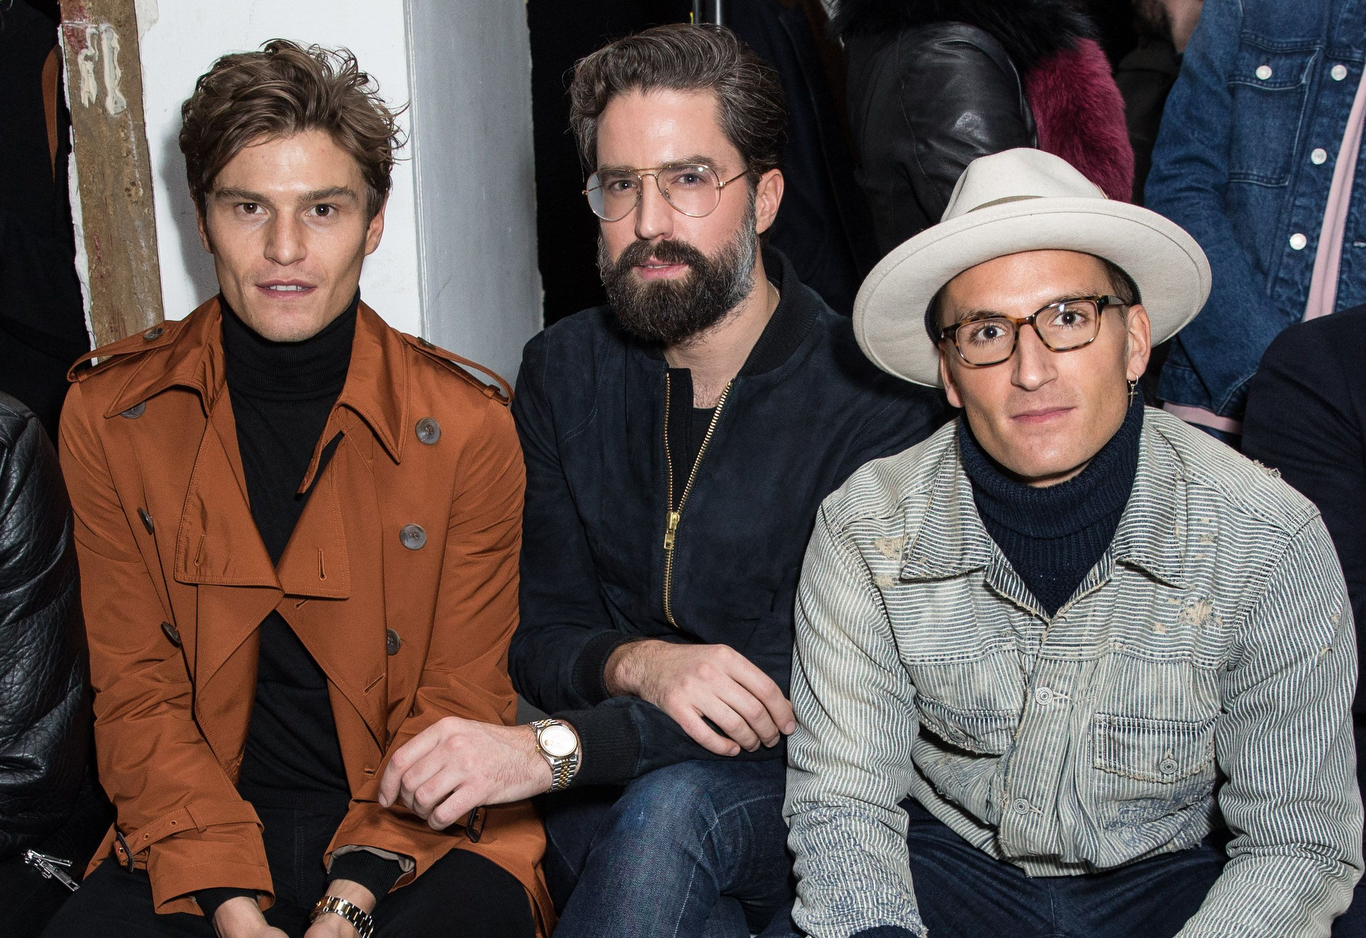 Oliver Cheshire, Jack Guinness and Oliver Proudlock